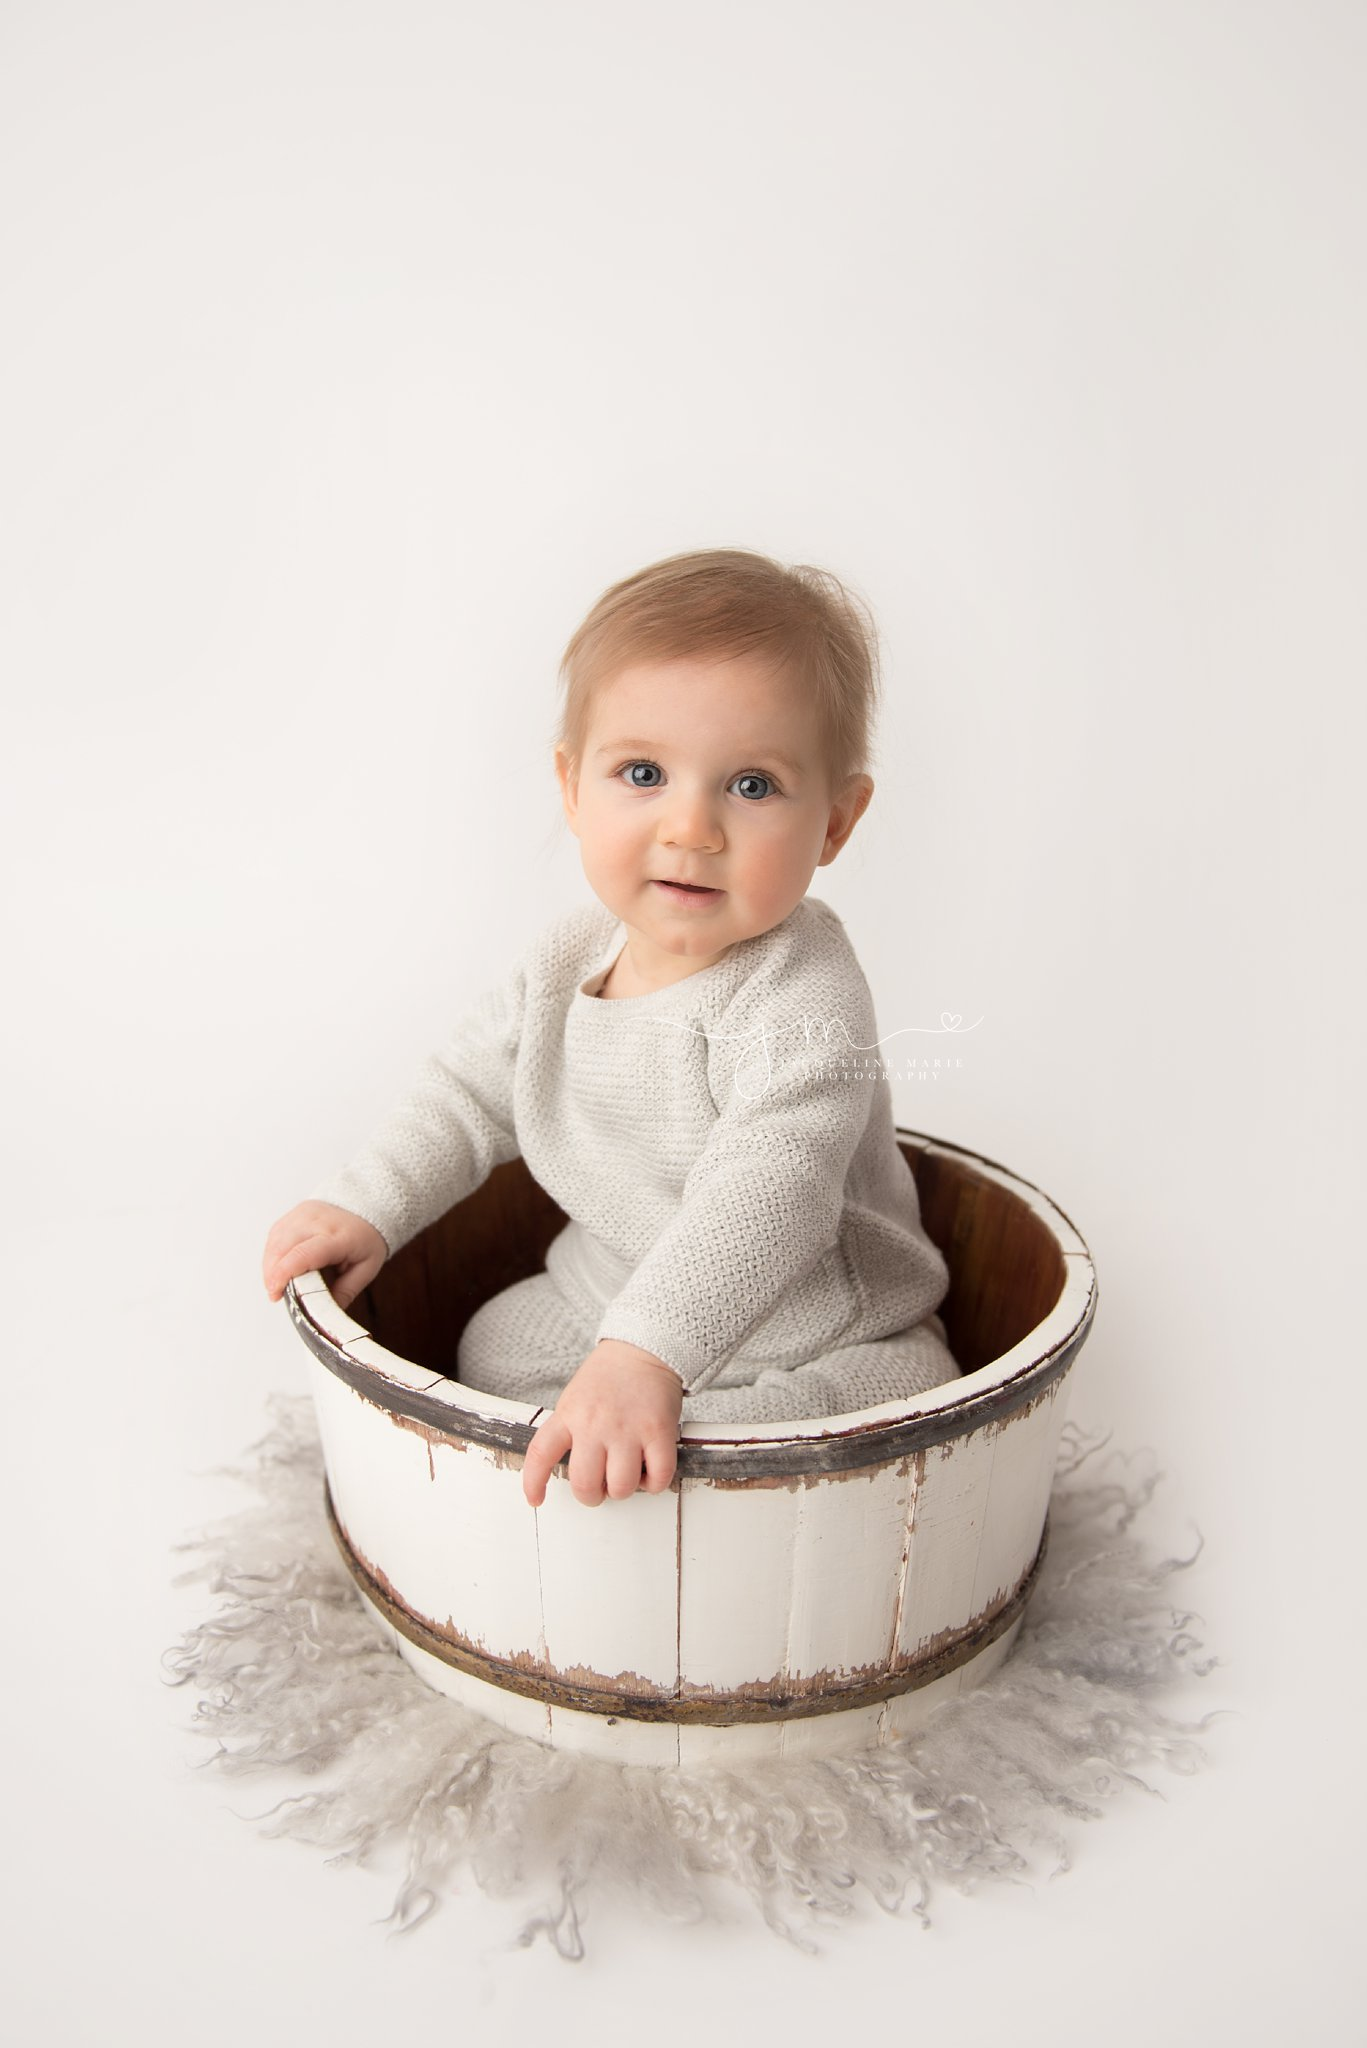 6 month old bay boy wears gray sweater and pants in a white wooden bowl in columbus ohio baby photographer studio